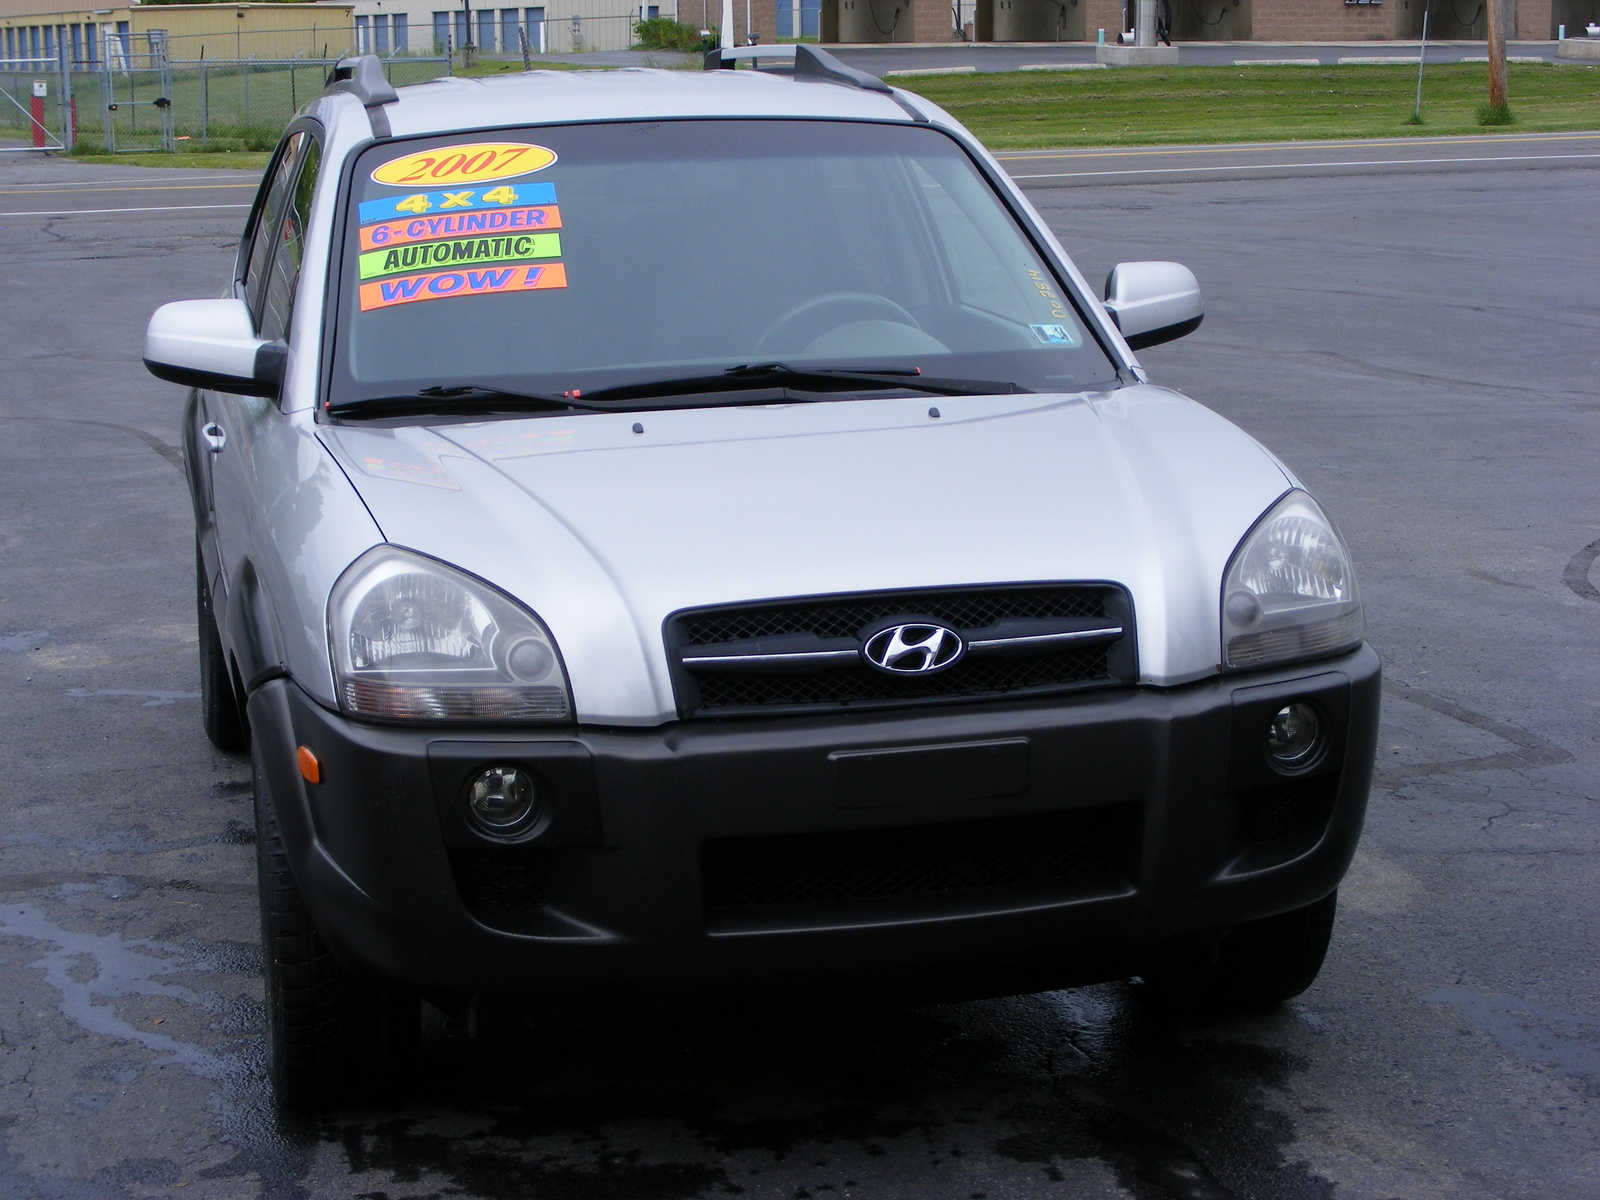 Used Cars Binghamton Ny >> Cars For Sale By Owner For Sale in Syracuse, NY - CarGurus